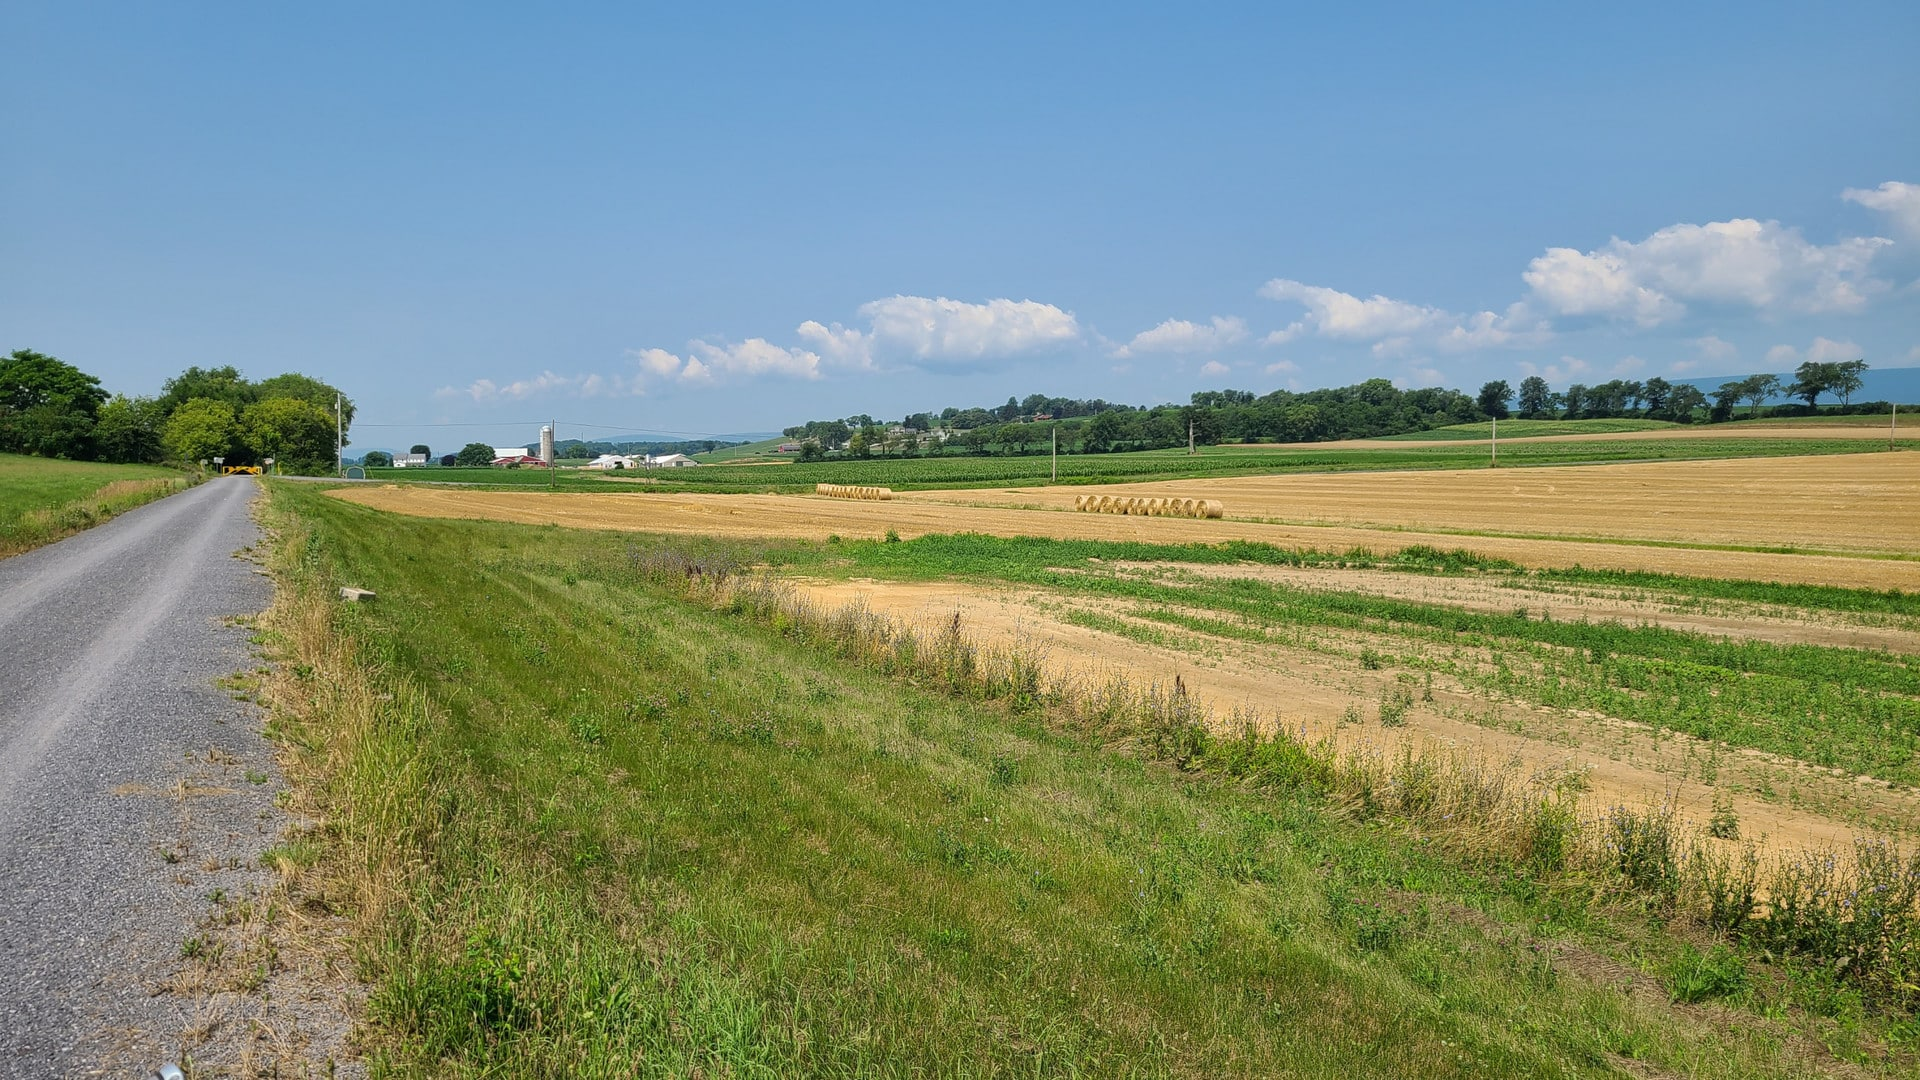 The gravel bike trail passes through a rolling farm field. Several dozen rolls of hay sit in the field, awaiting pickup. In the distance, a treeline marks the edge of the farm. A few fluffy clouds dot an otherwise clear blue sky.